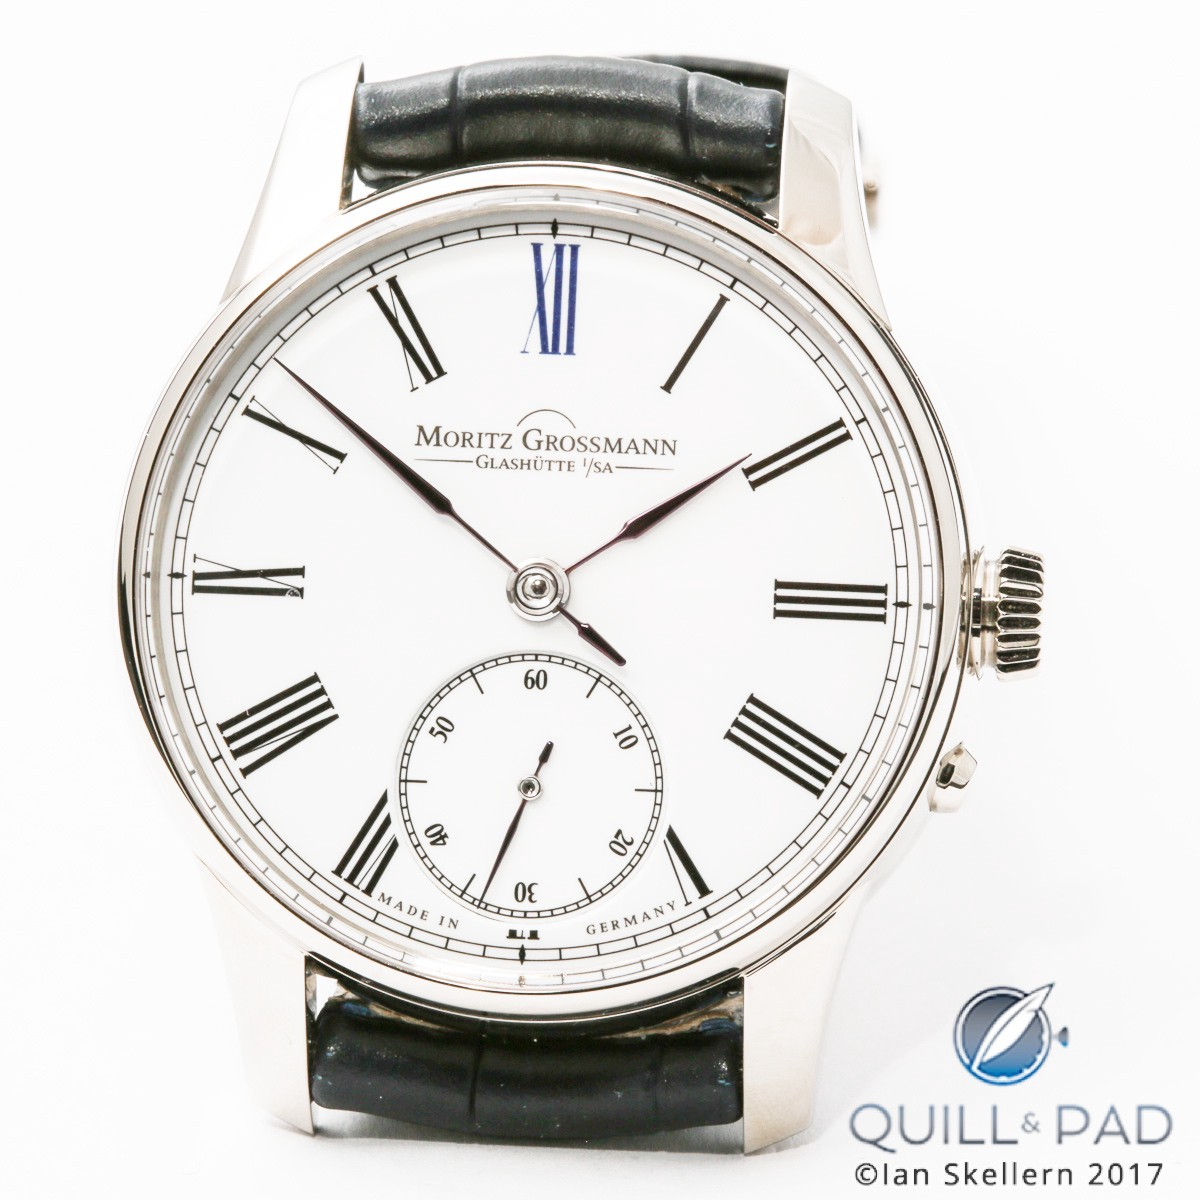 New at Baselworld 2017 by Moritz Grossmann: a 41 mm Atum model with a sumptuous oven-fired (grand feu) enamel dial